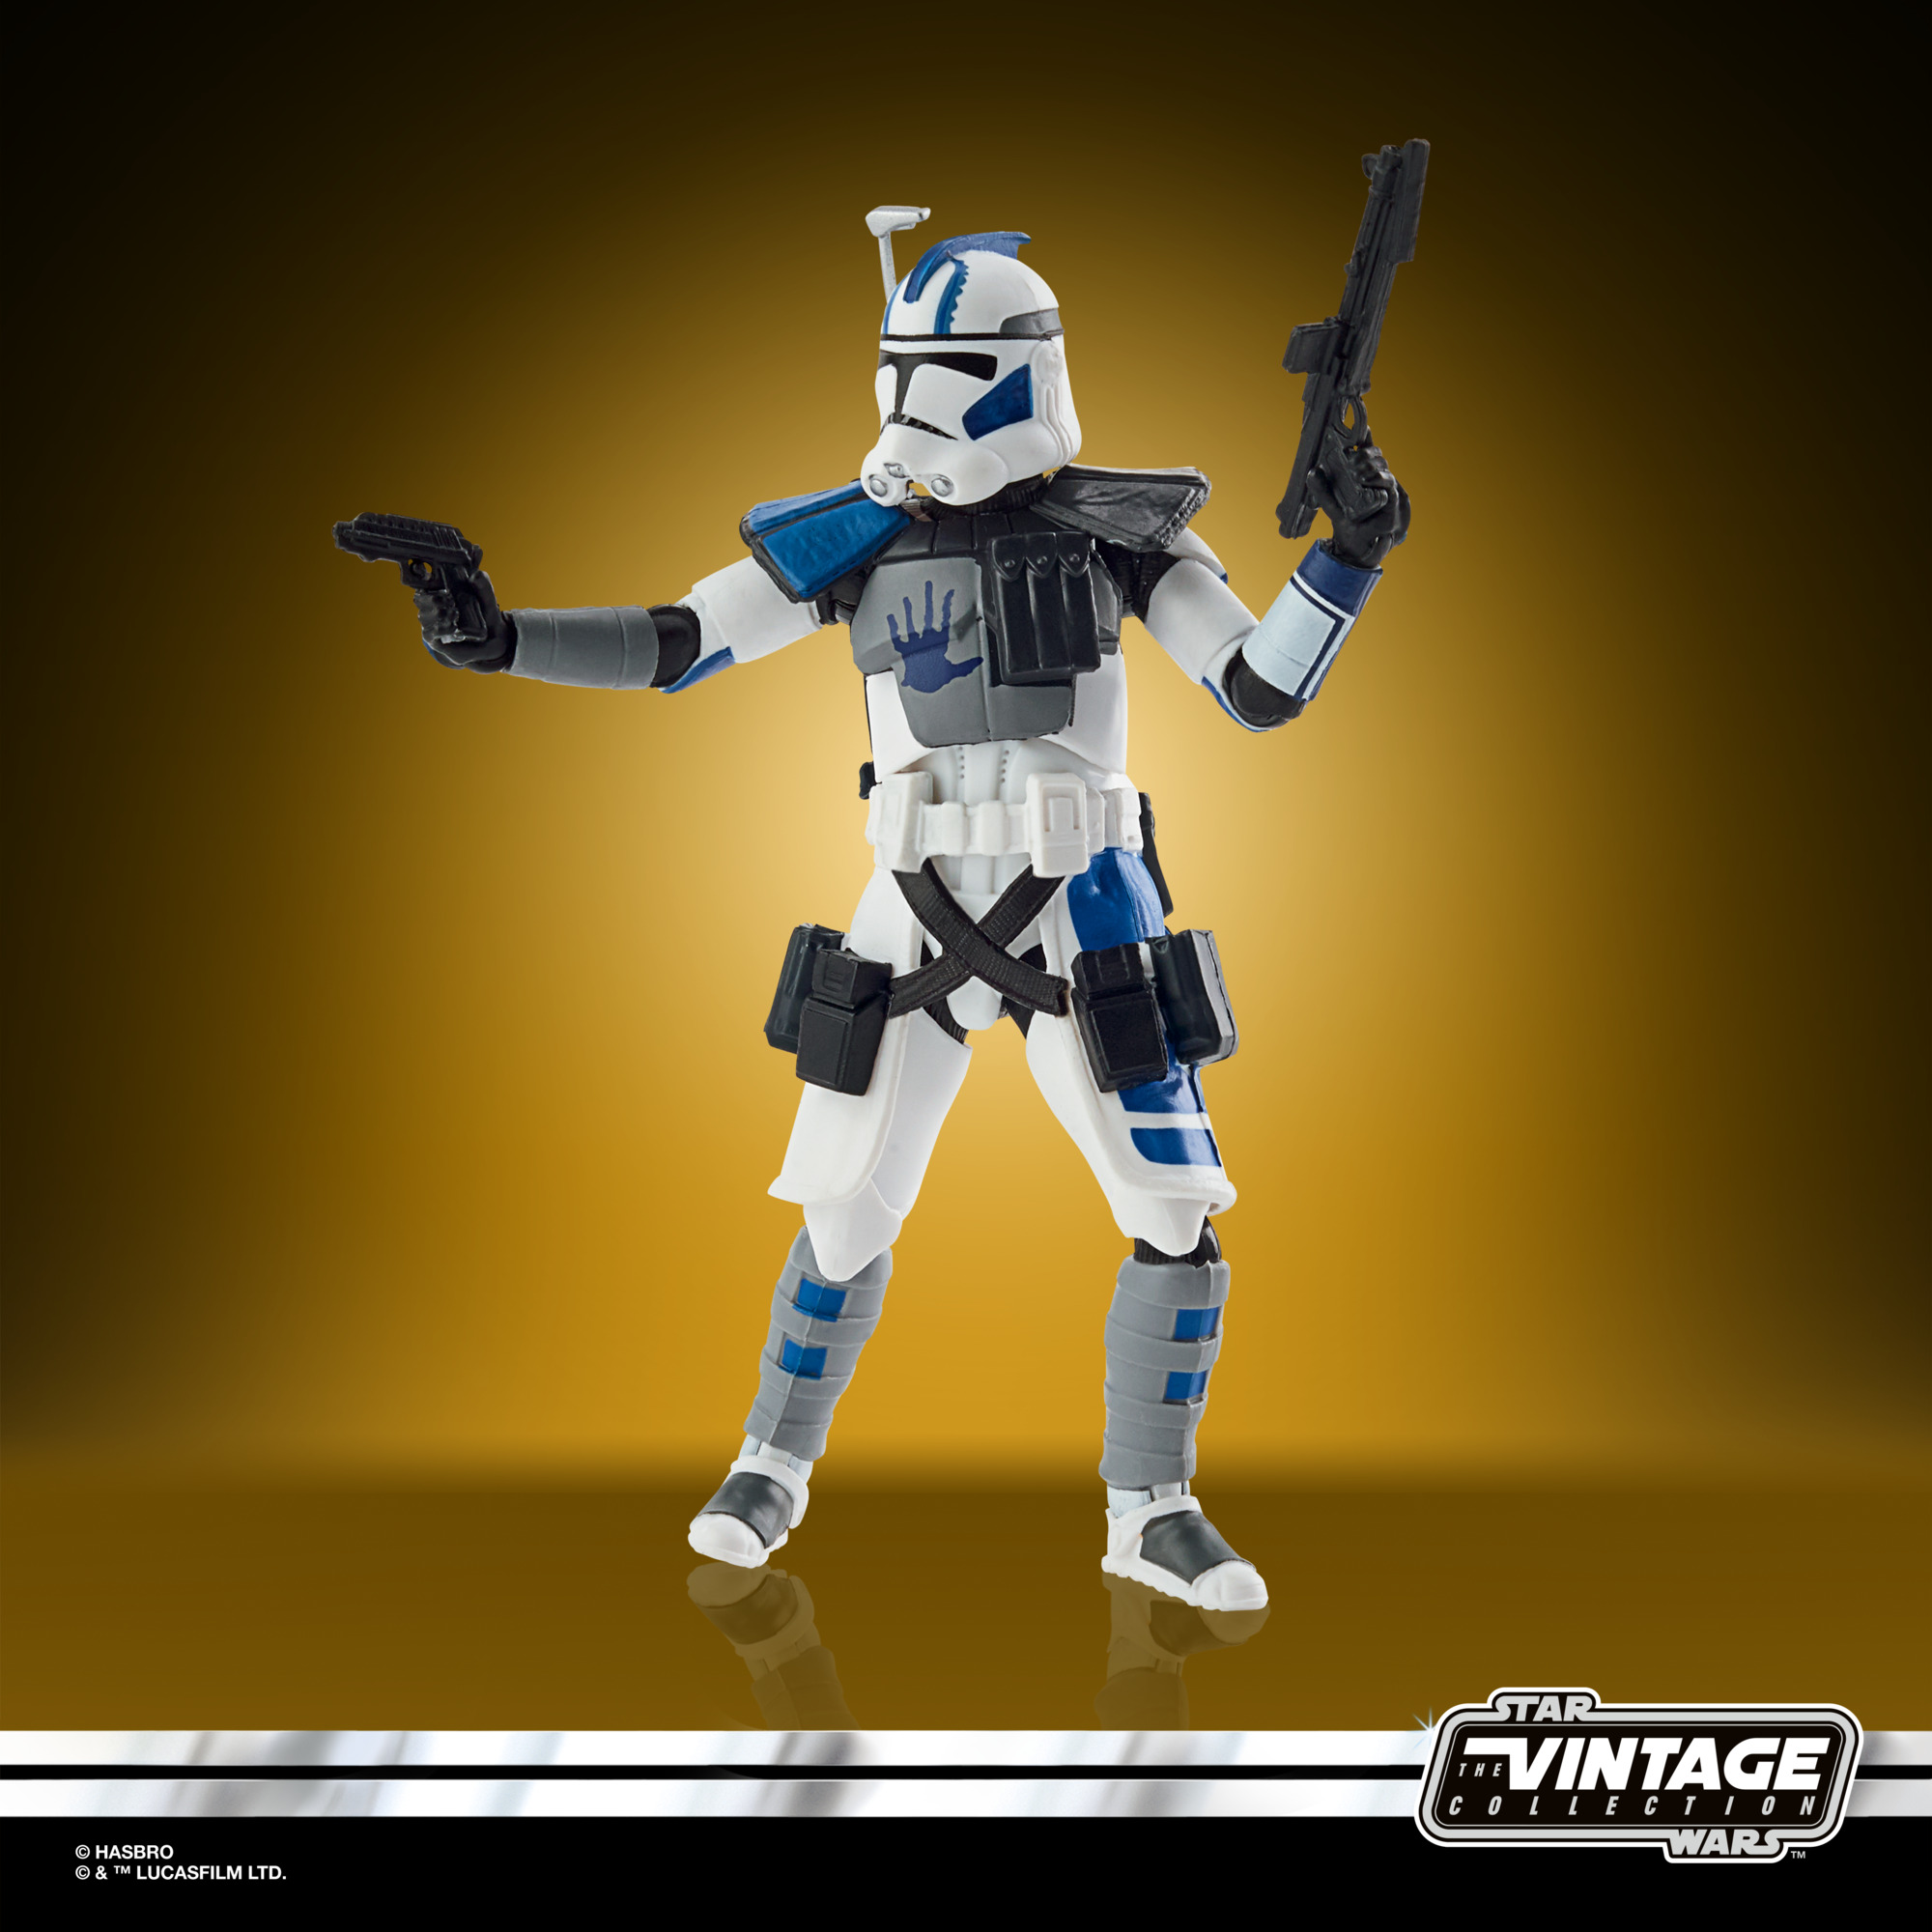 Star Wars The Tintage Collection ARC Trooper Echo F1895 5010993834396